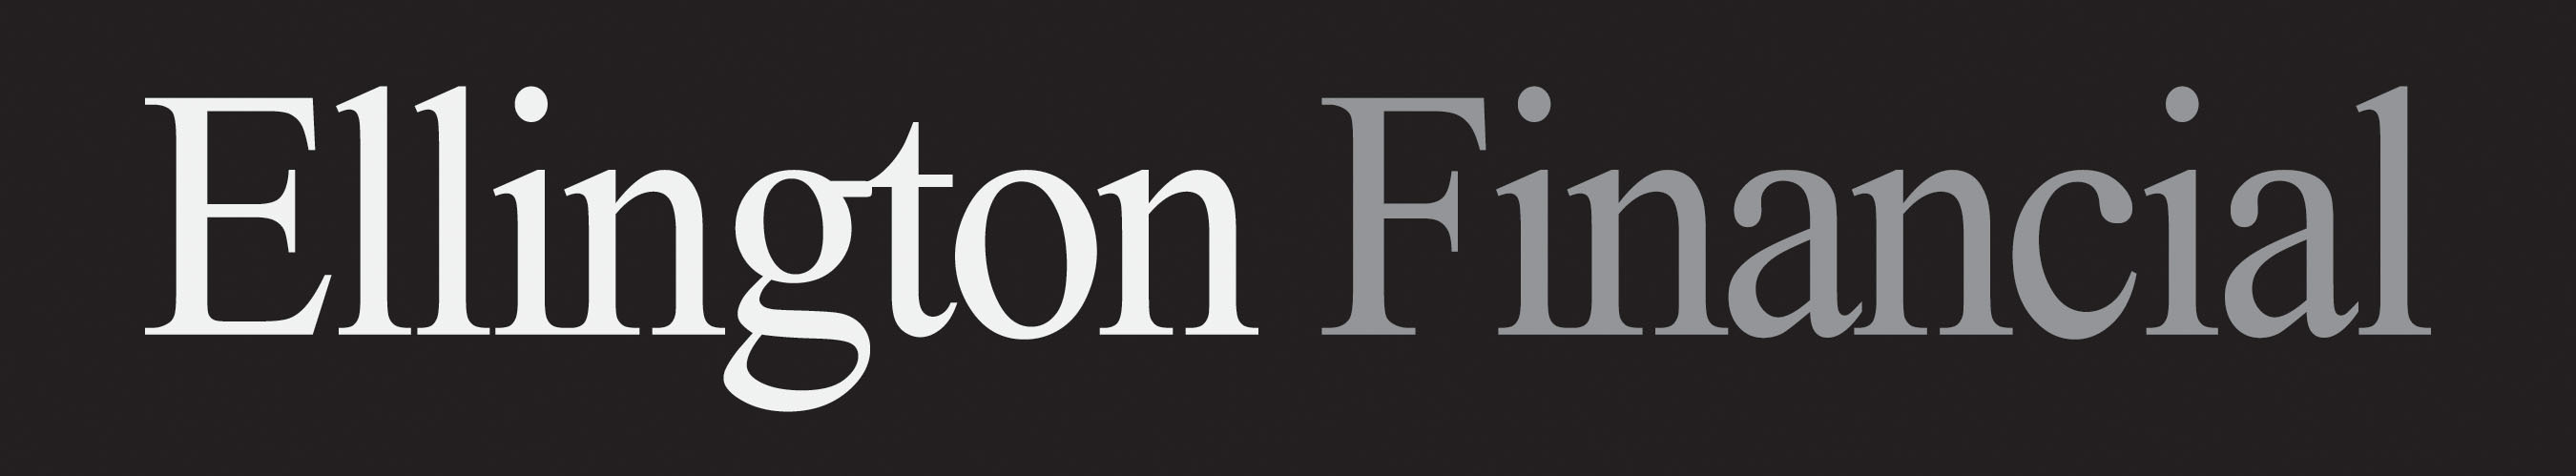 Ellington Financial LLC.